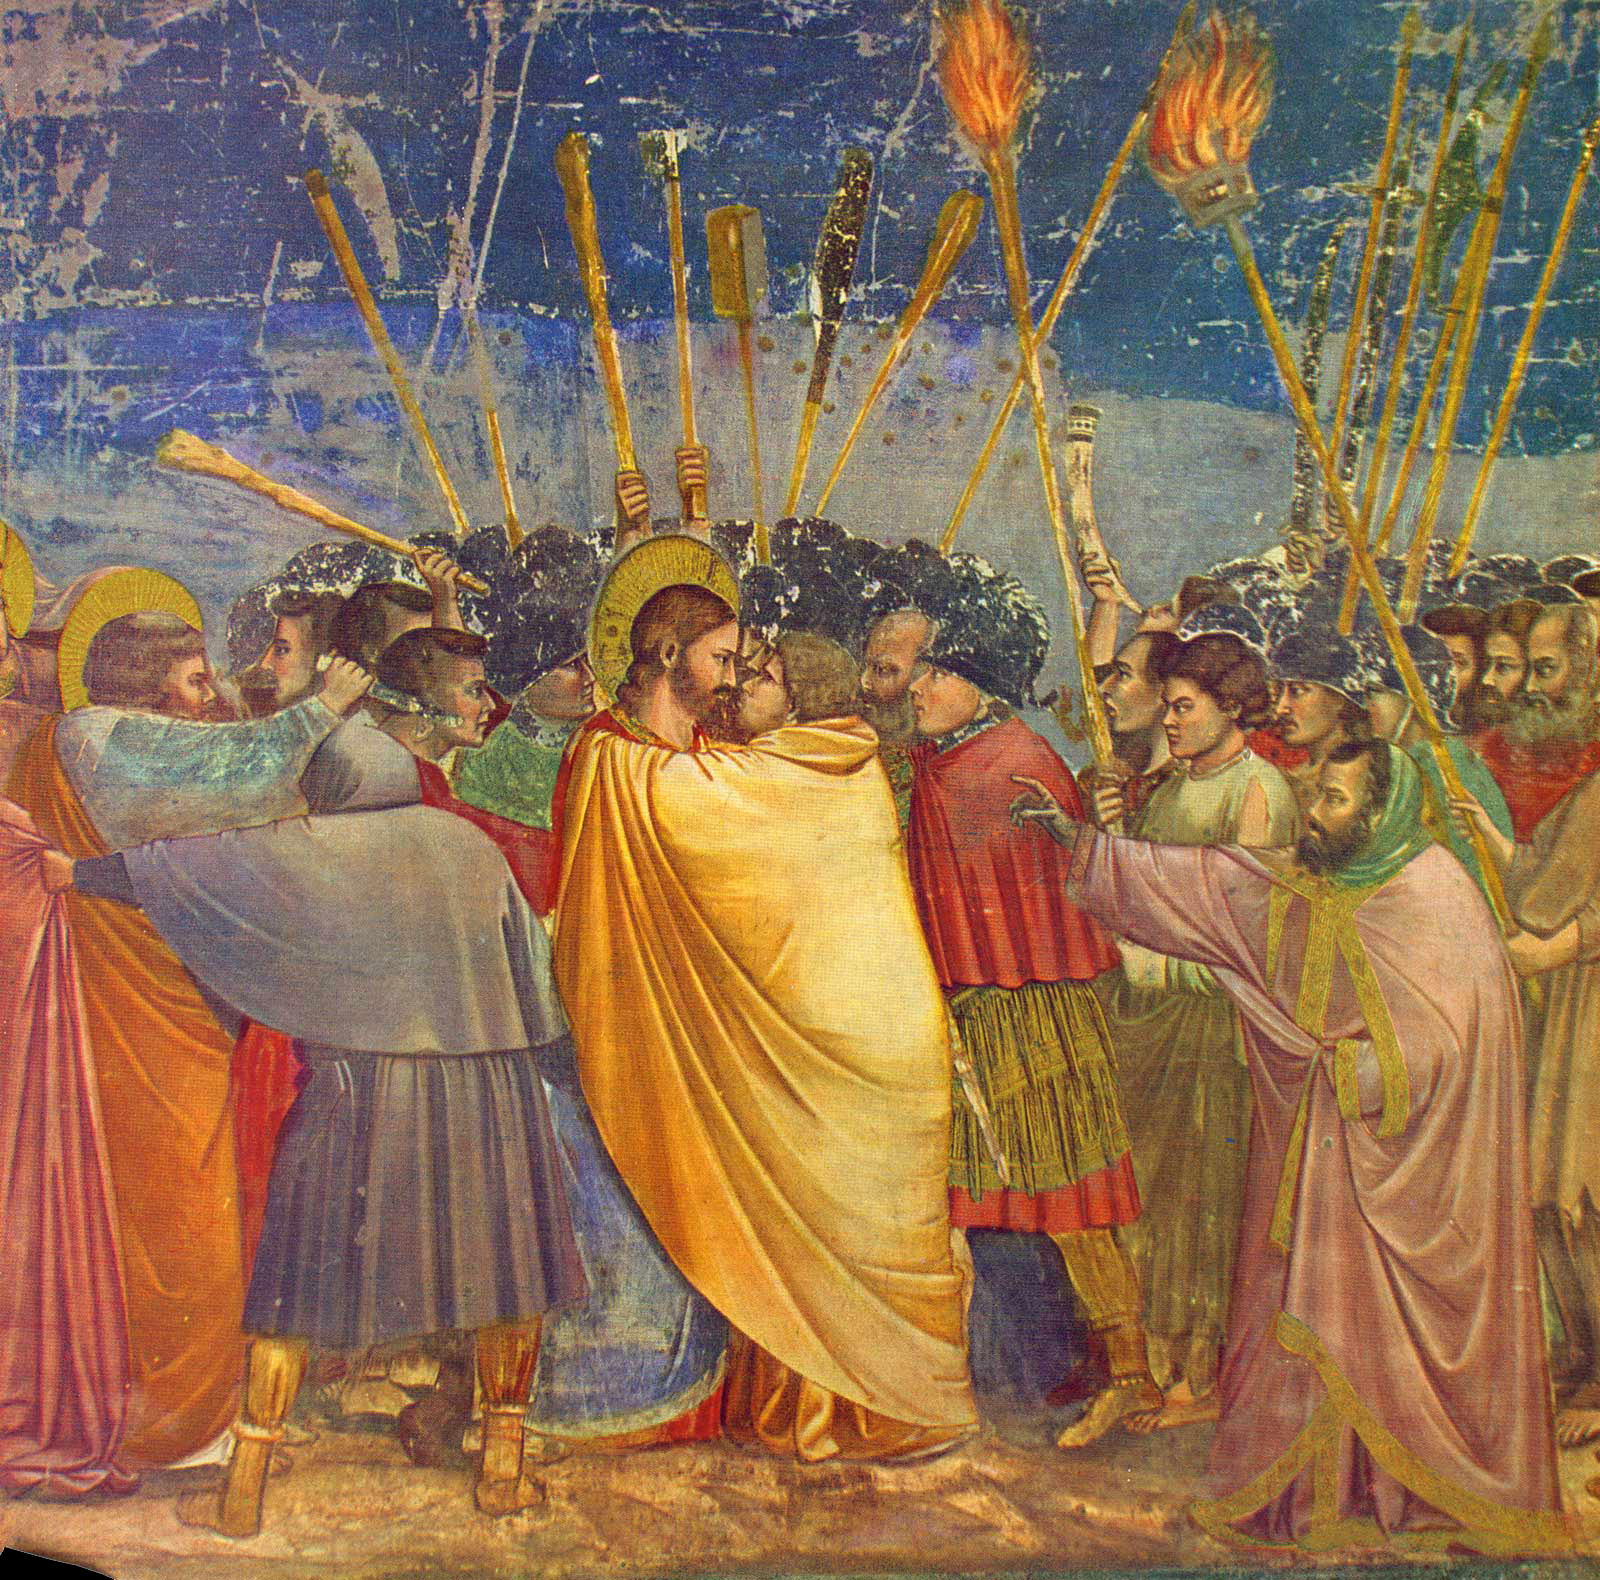 The Betrayal - by Giotto